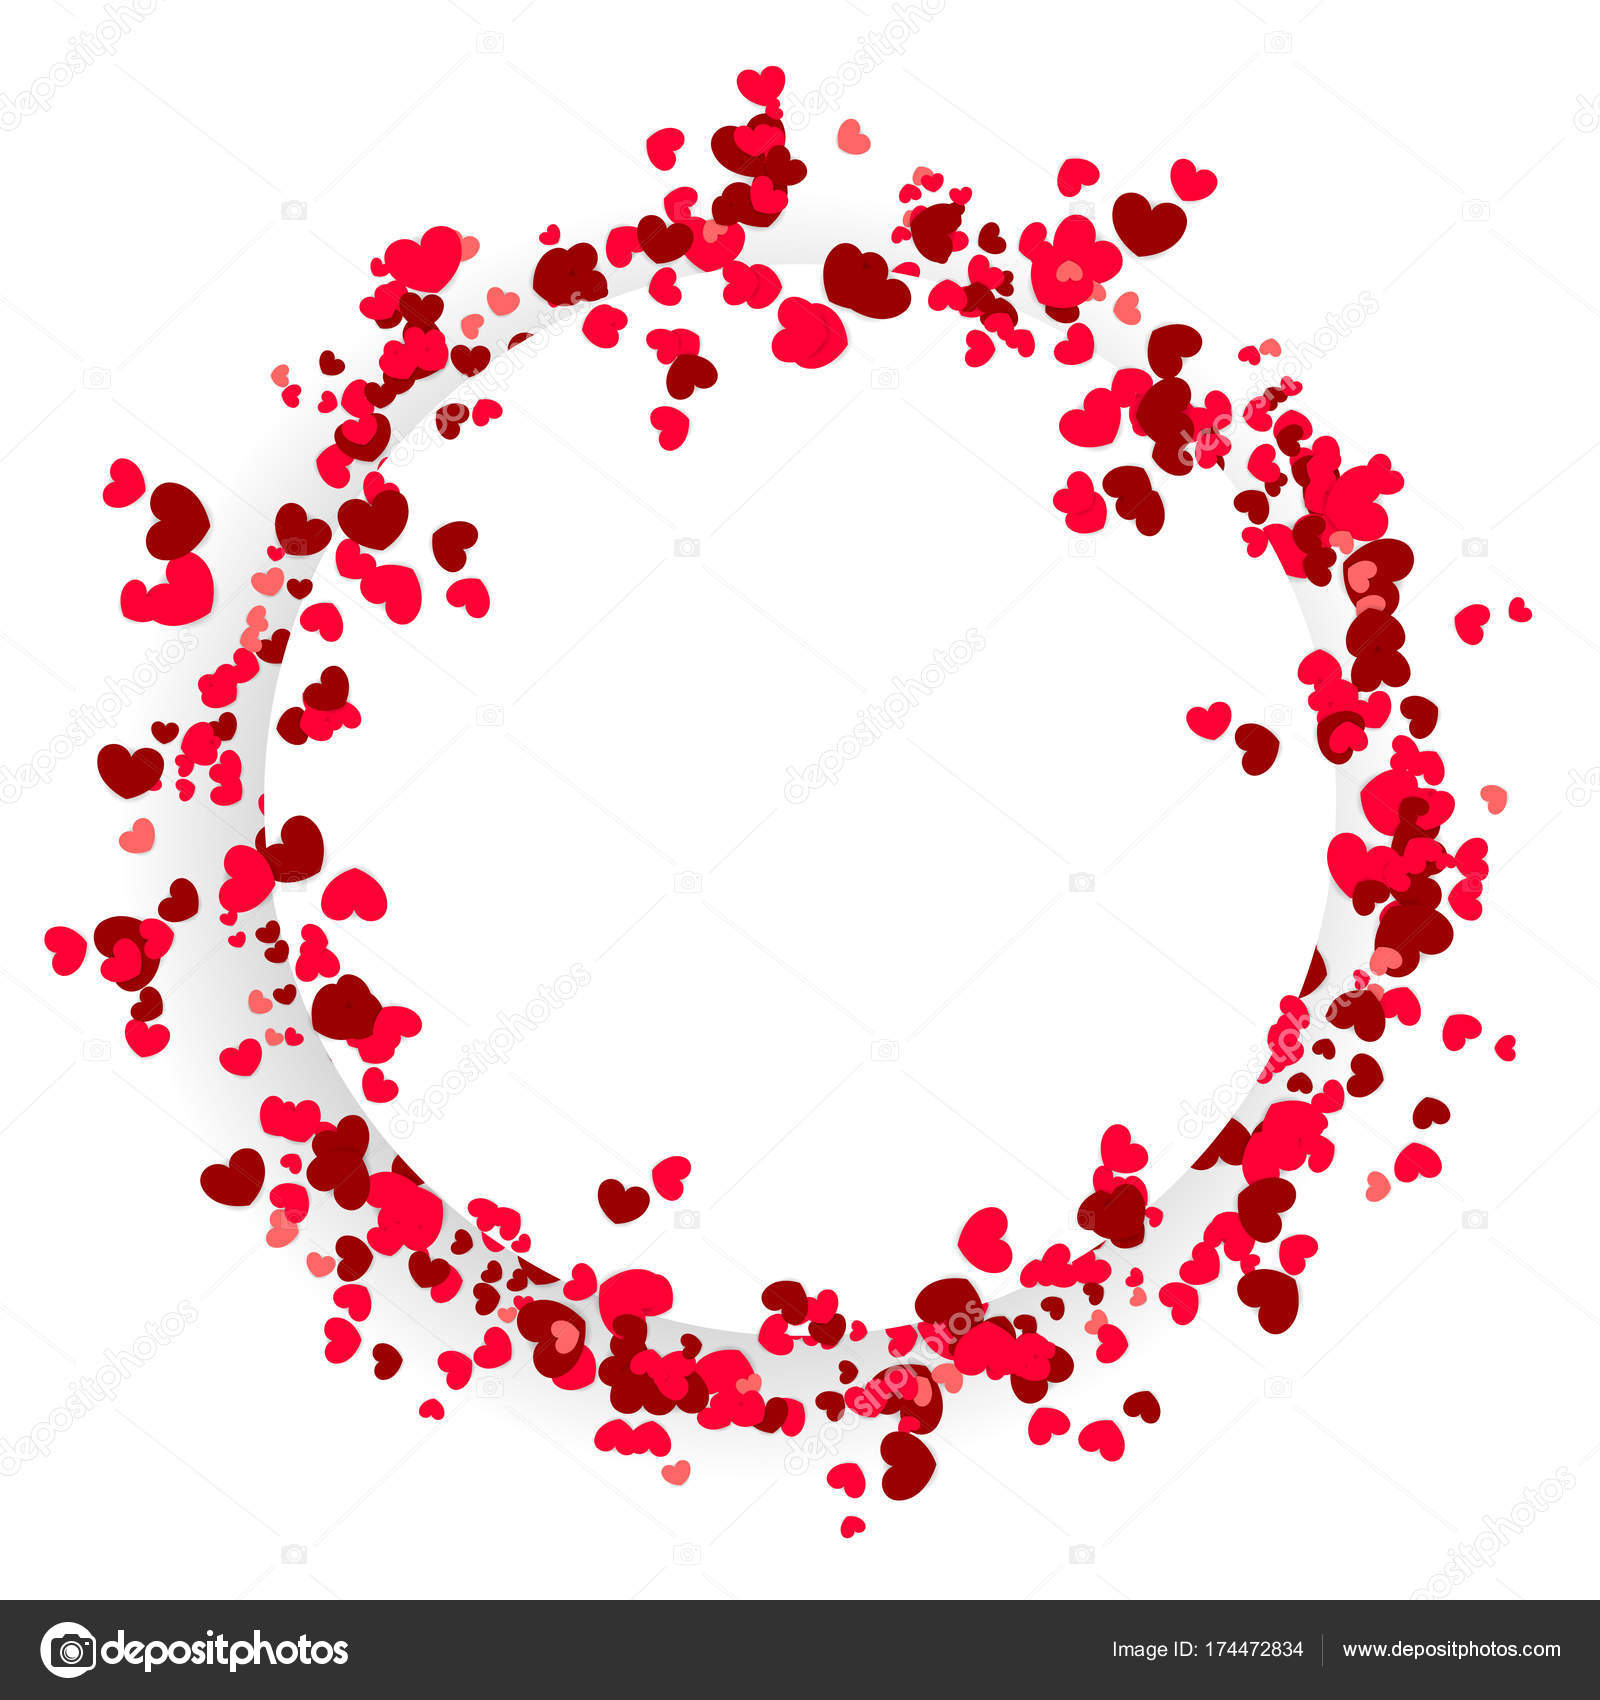 Valentine day cute background stock vector helensh 174472834 valentine day cute background stock vector voltagebd Image collections